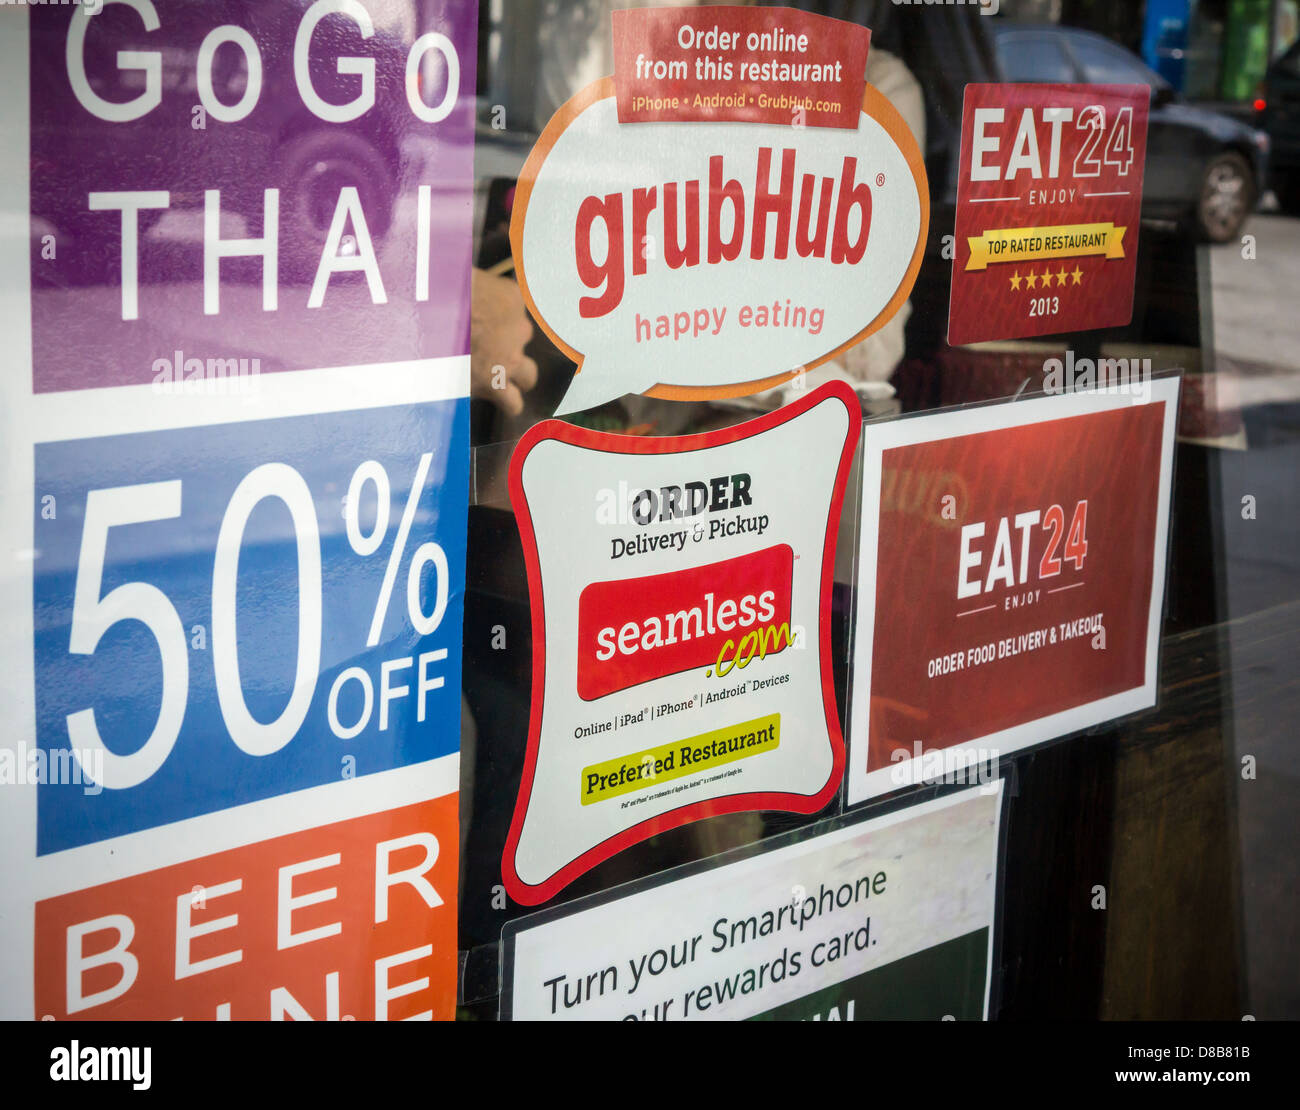 Stickers for seamless and grubhub internet food delivery services are seen on the window of a restaurant in chelsea in new york